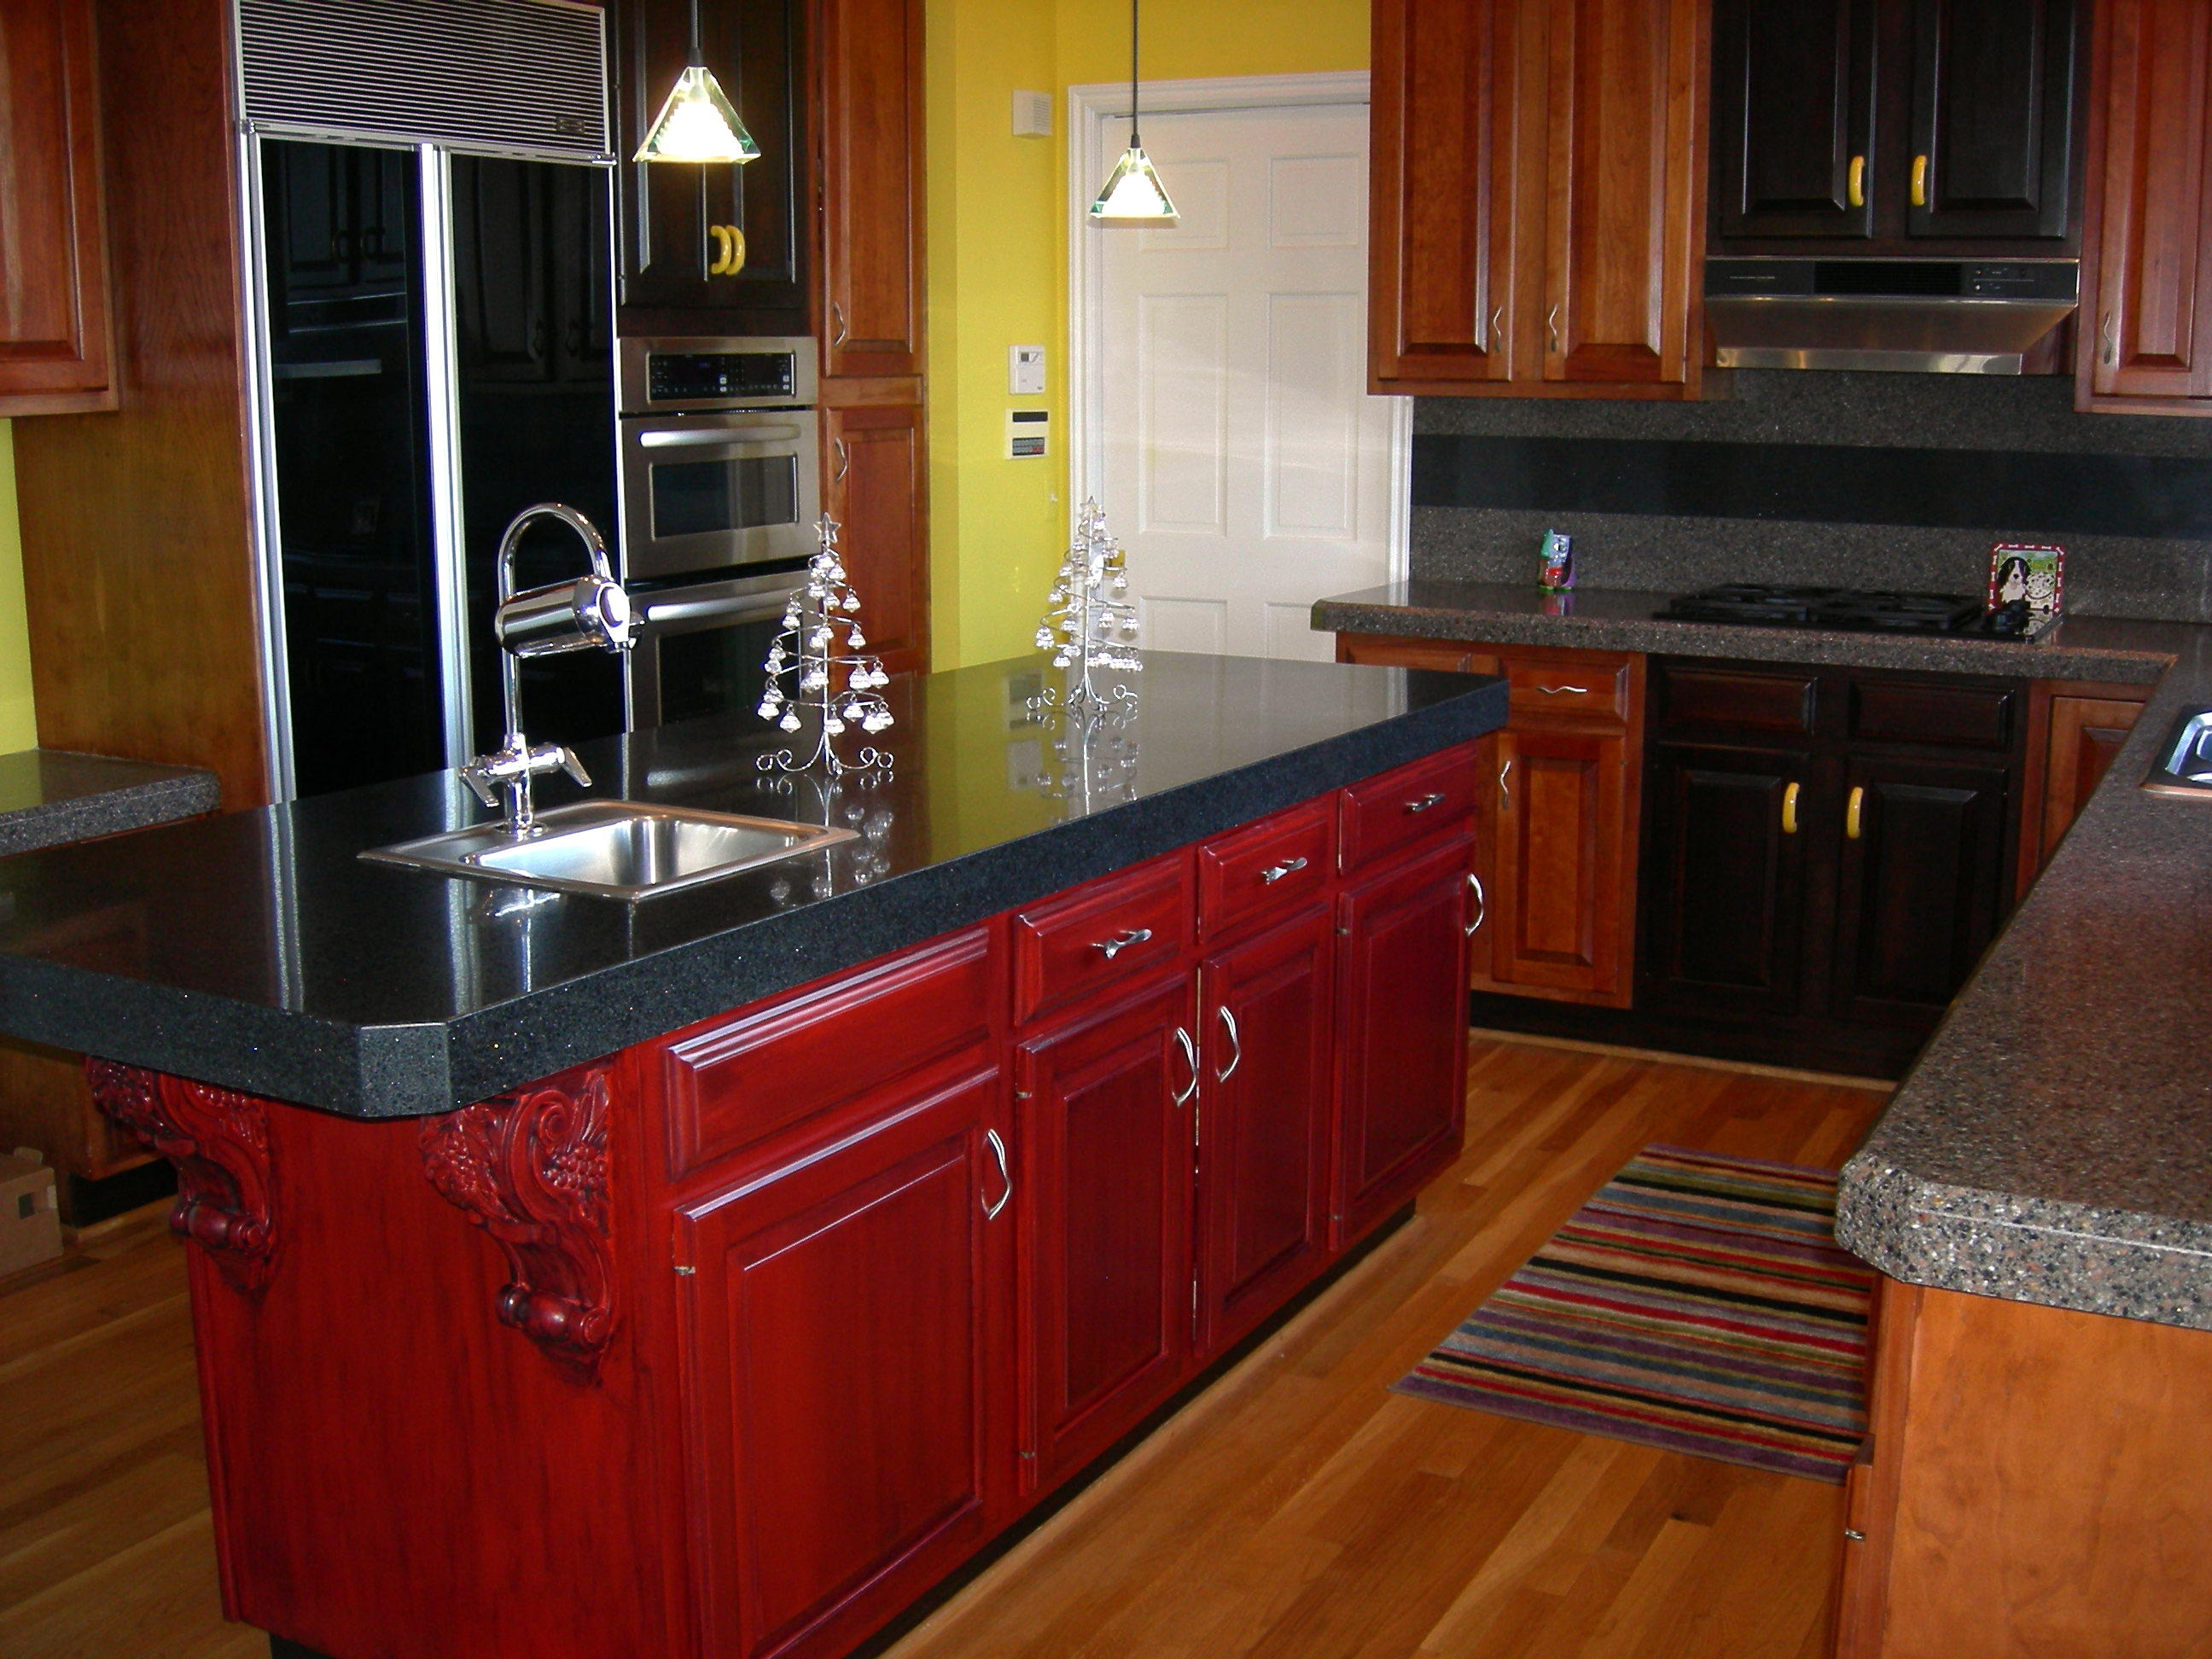 Refinishing Cabinets - A Simple Do-It-Yourself Task ...